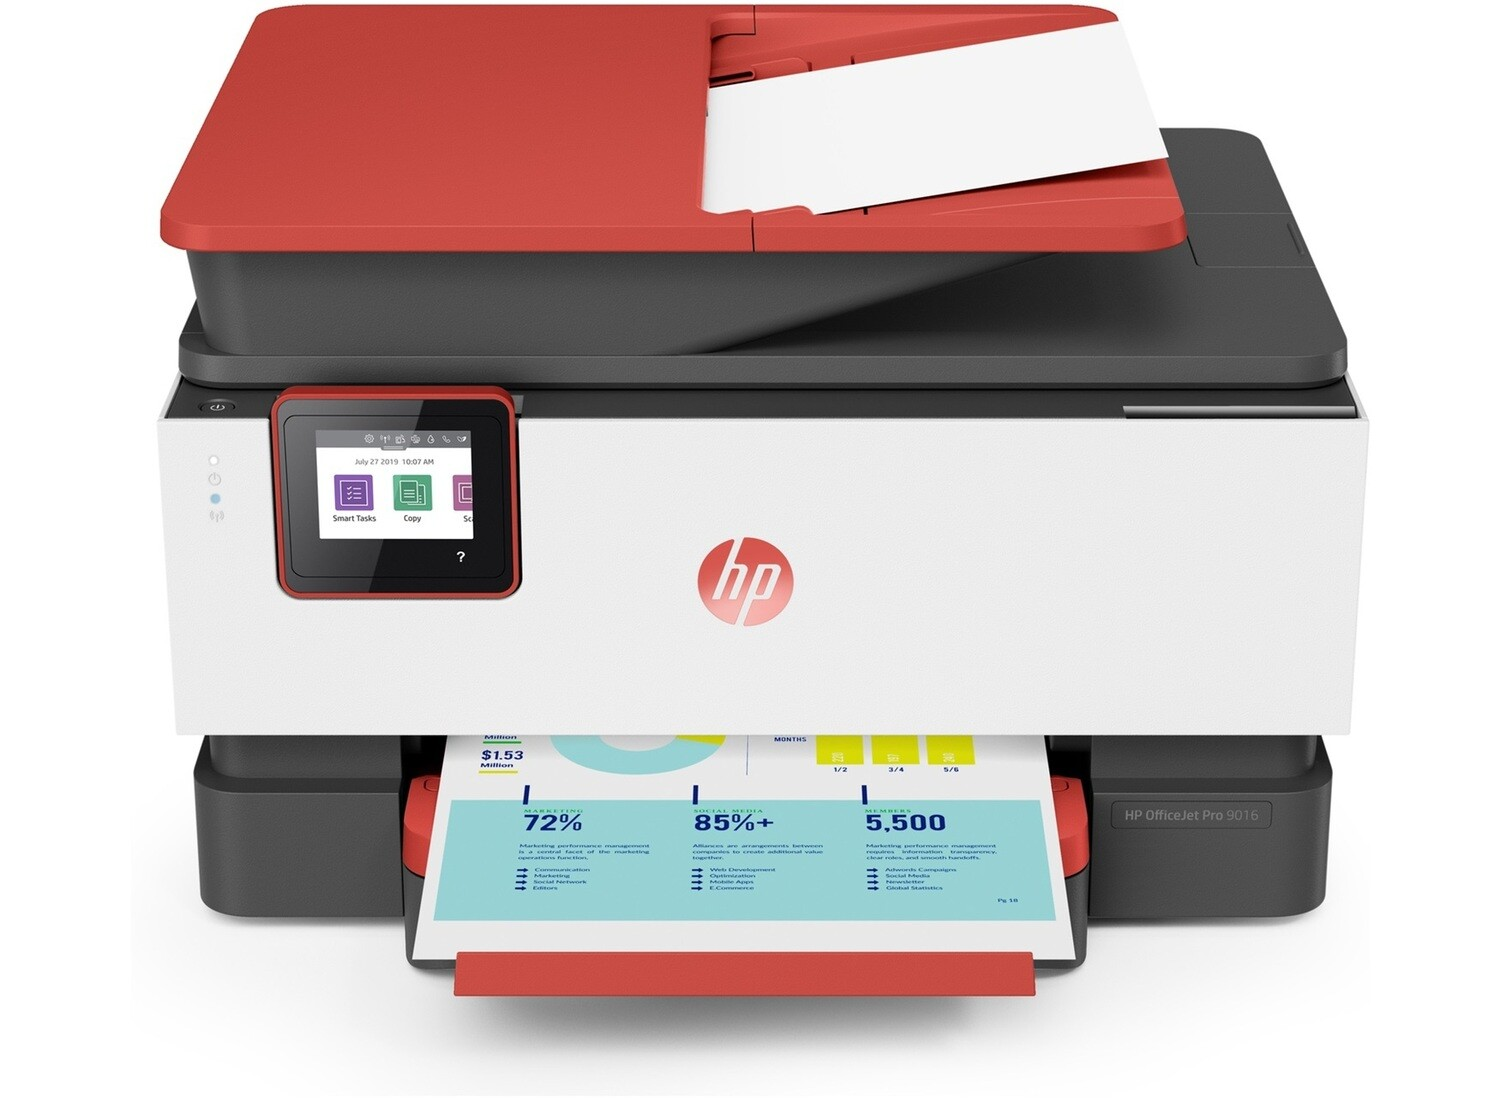 Imprimante tout-en-un HP OfficeJet Pro 9016